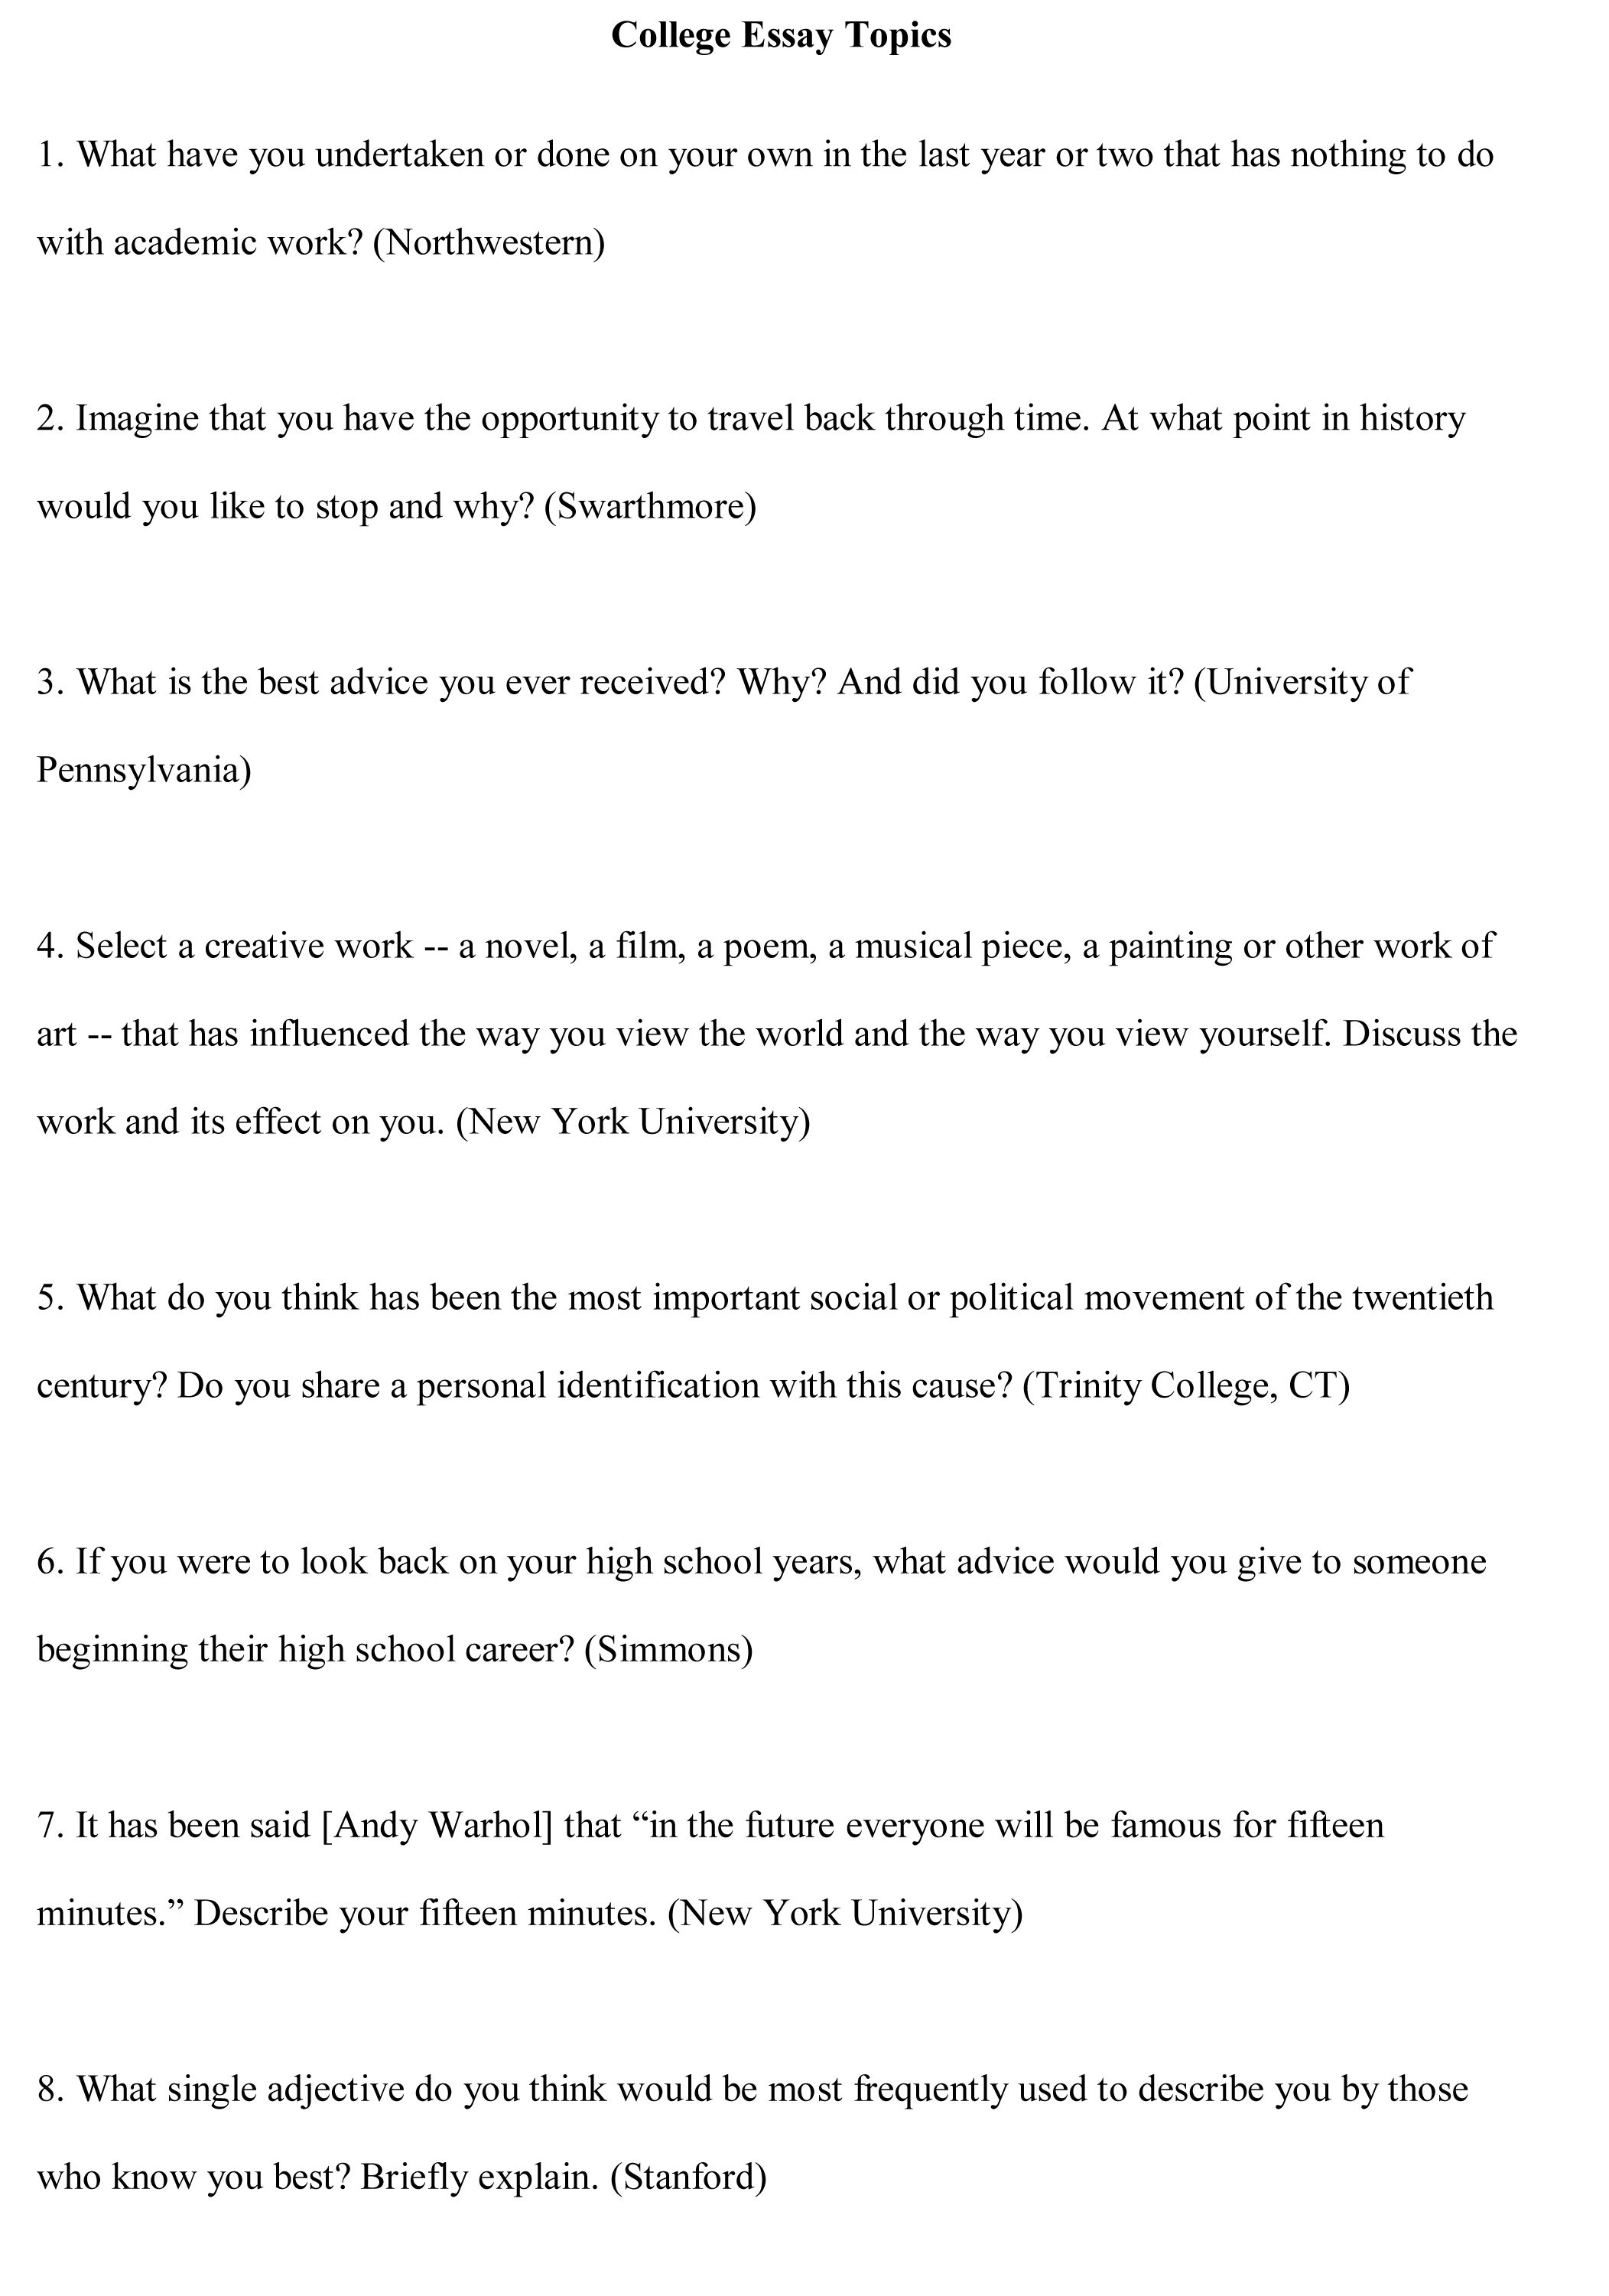 002 College Essay Topics Free Sample1cbu003d Top A B And C Argumentative Common To Avoid Full